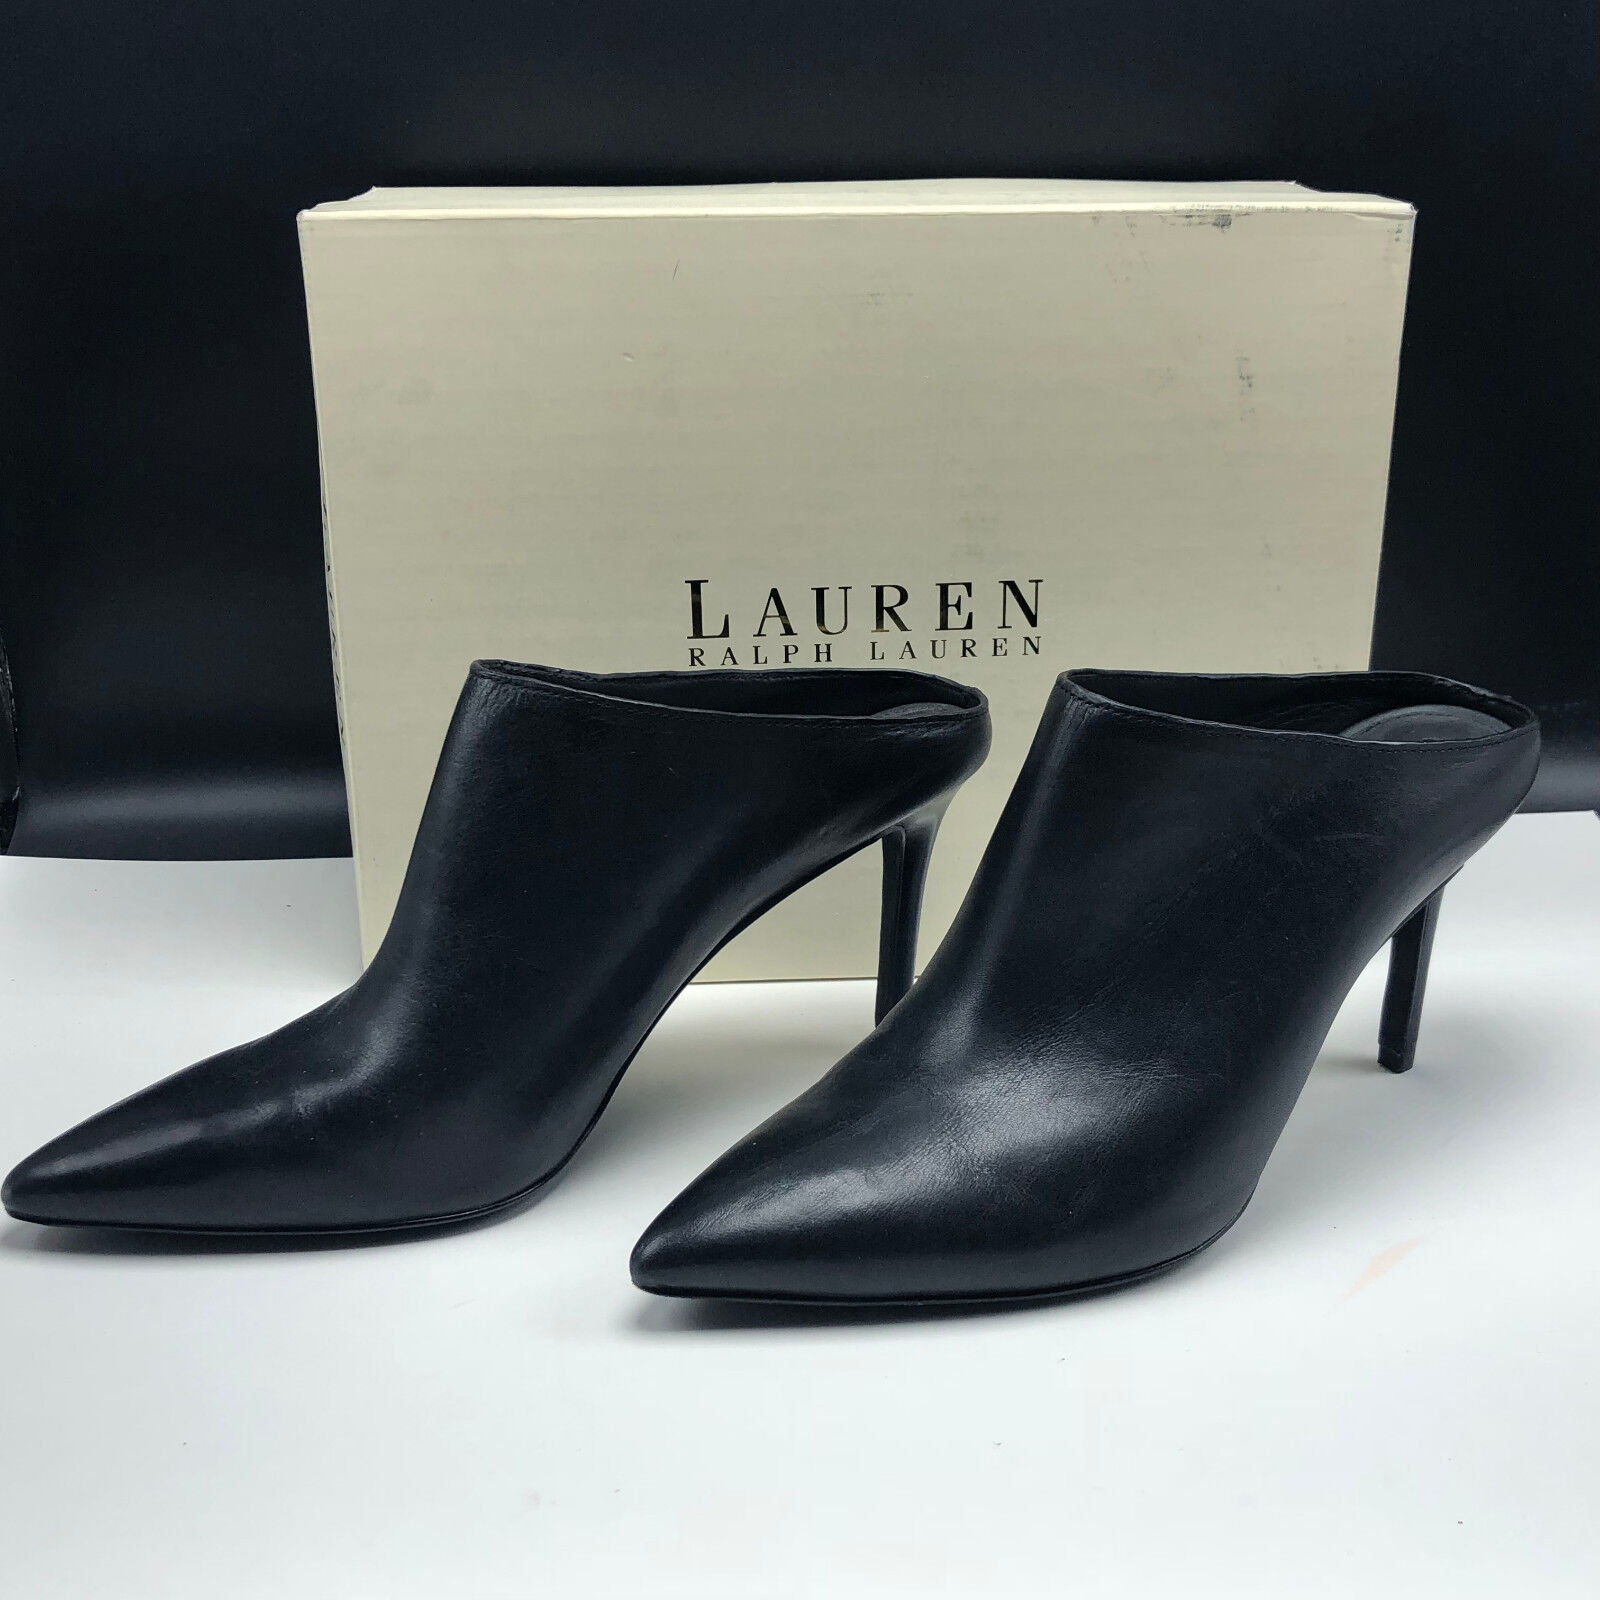 RALPH LAUREN BLACK LEATHER HIGH HEELS Kellie pm drs burnished 9.5 B shoes womens